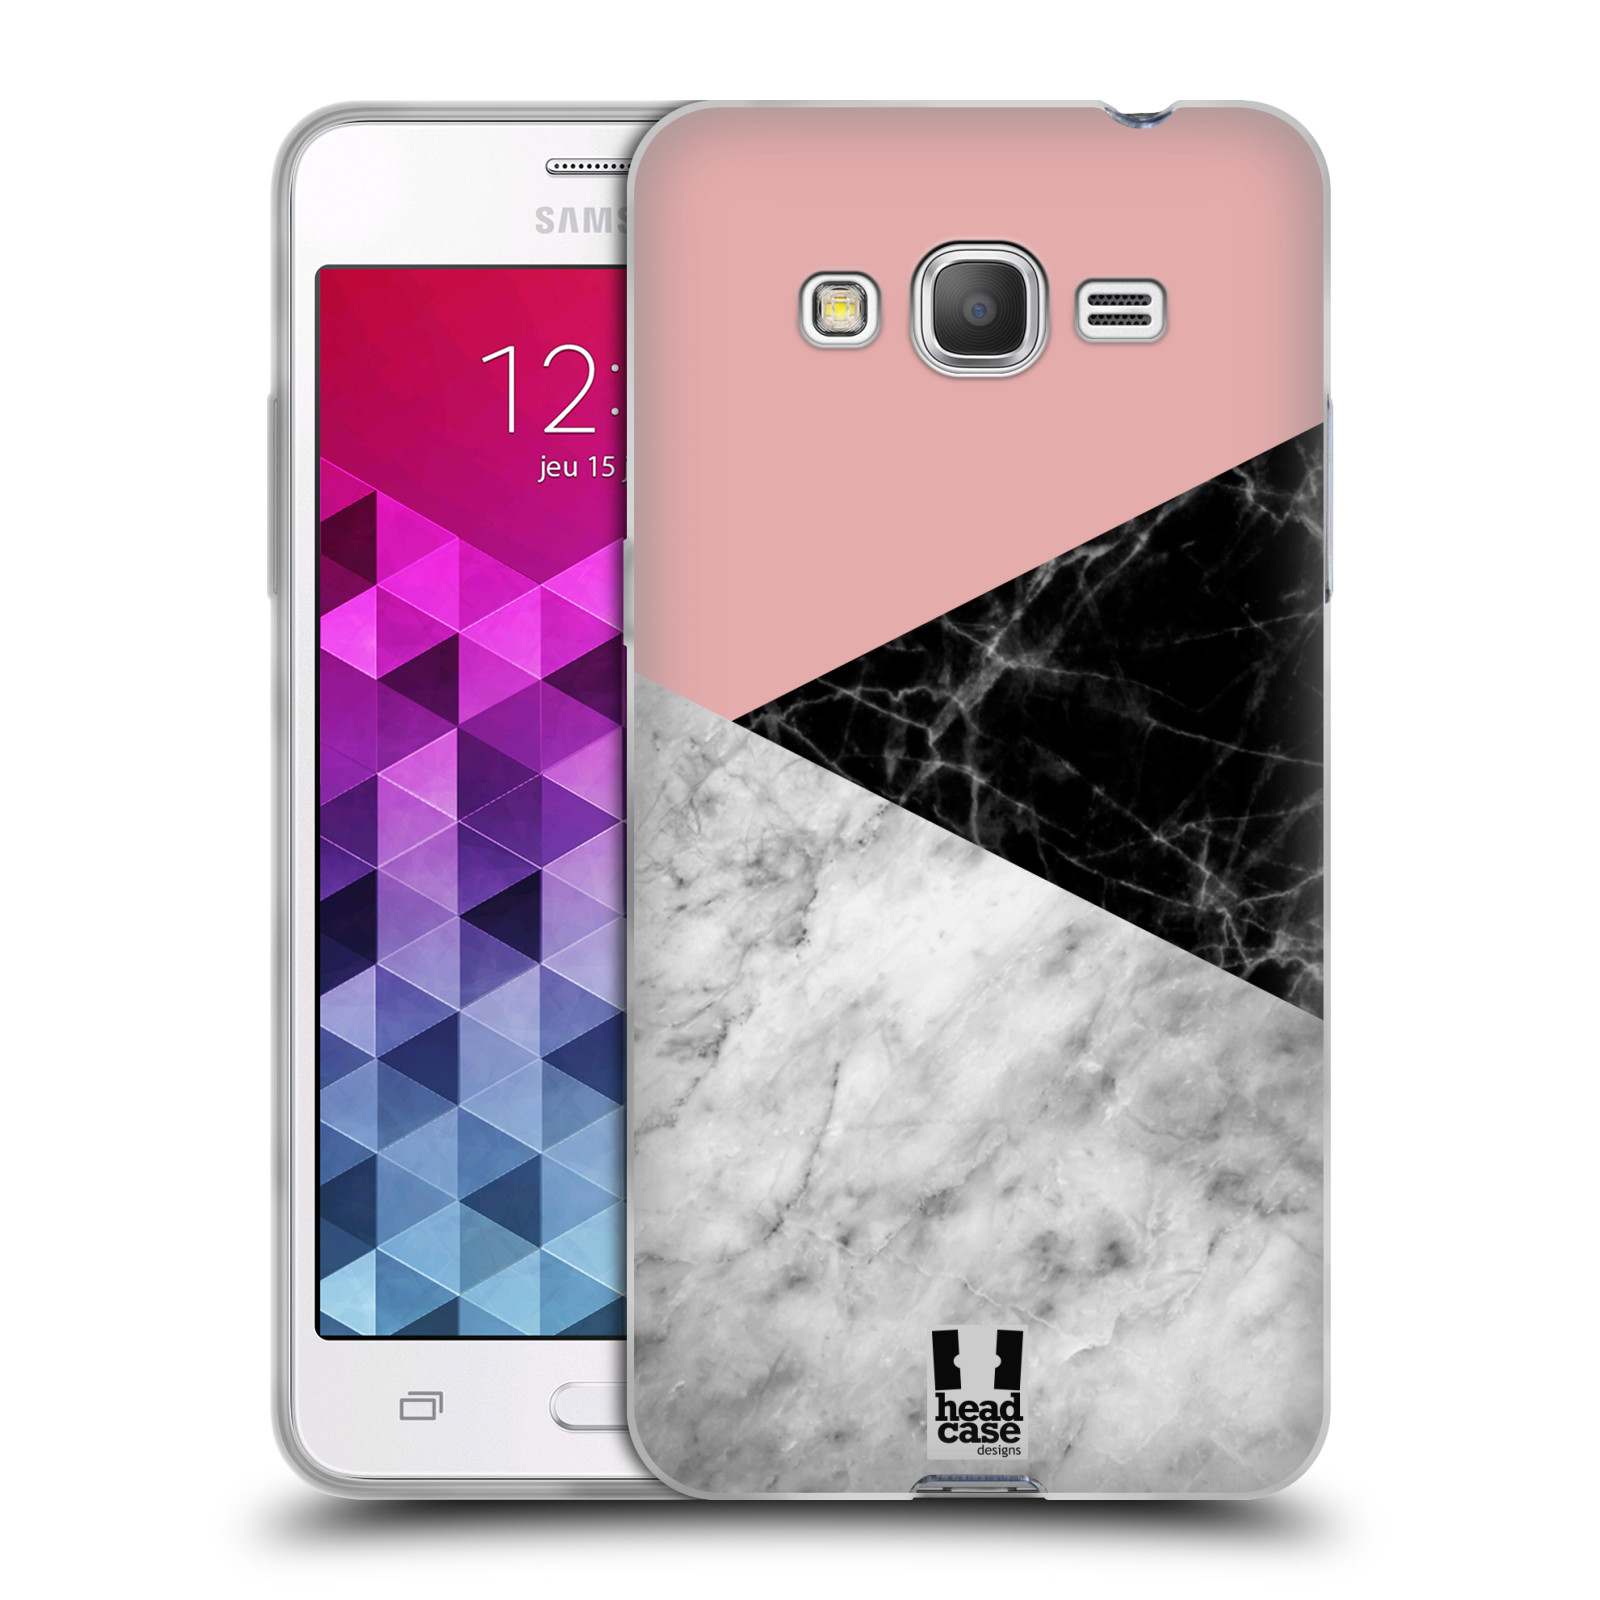 Silikonové pouzdro na mobil Samsung Galaxy Grand Prime VE - Head Case - Mramor mix